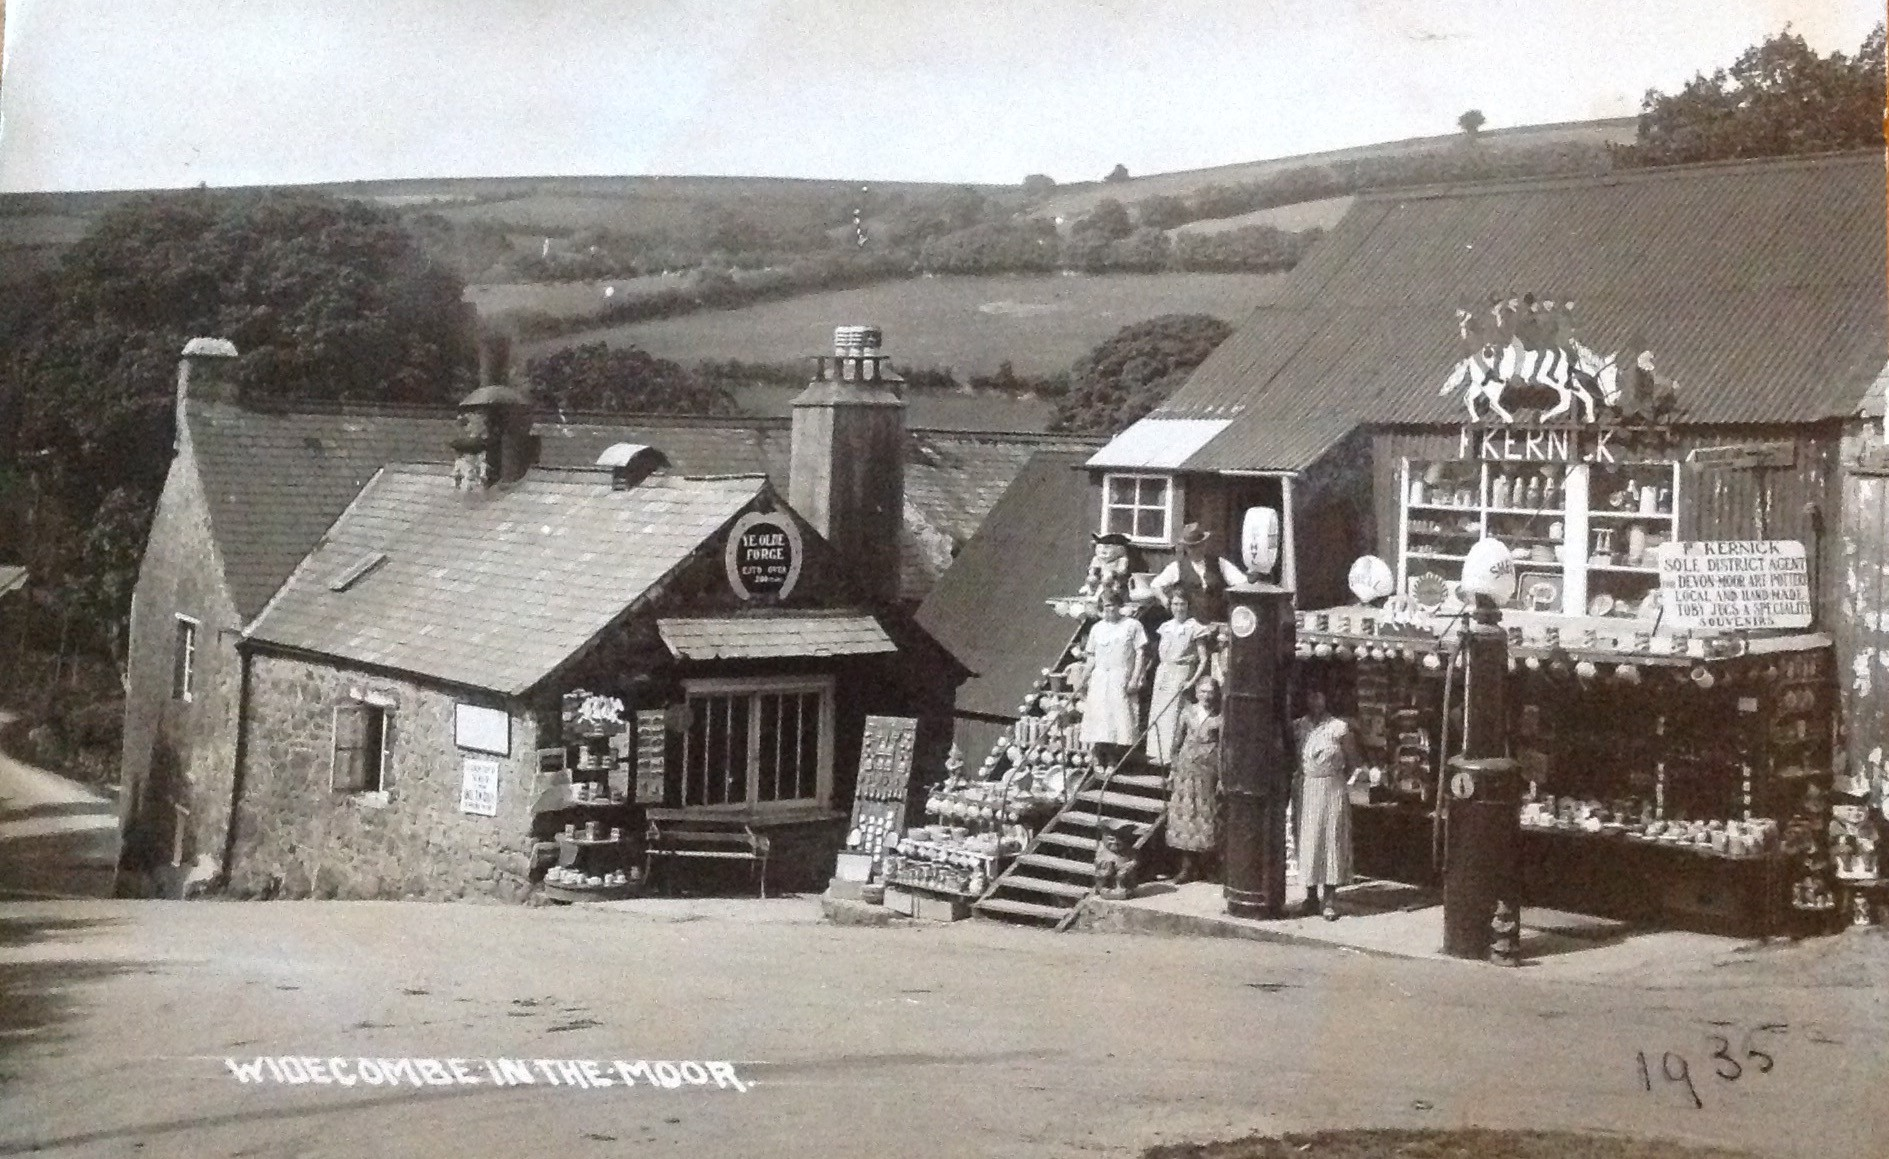 Kernick stores, WIdecombe, 1935